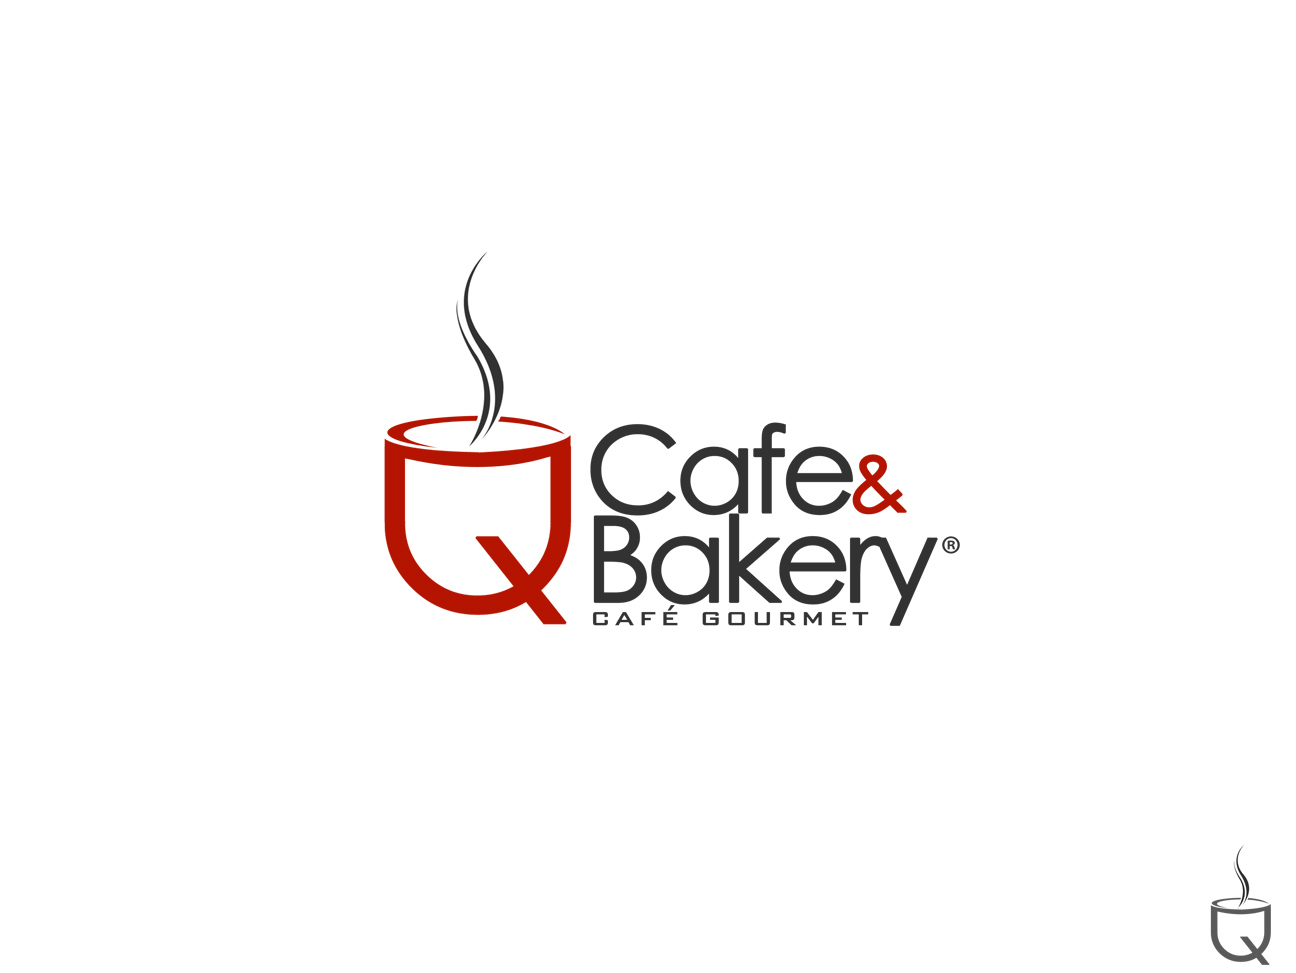 Logo Design by antoneofull for Cafe and Bakery needs a Logo Design - Design  #3218508